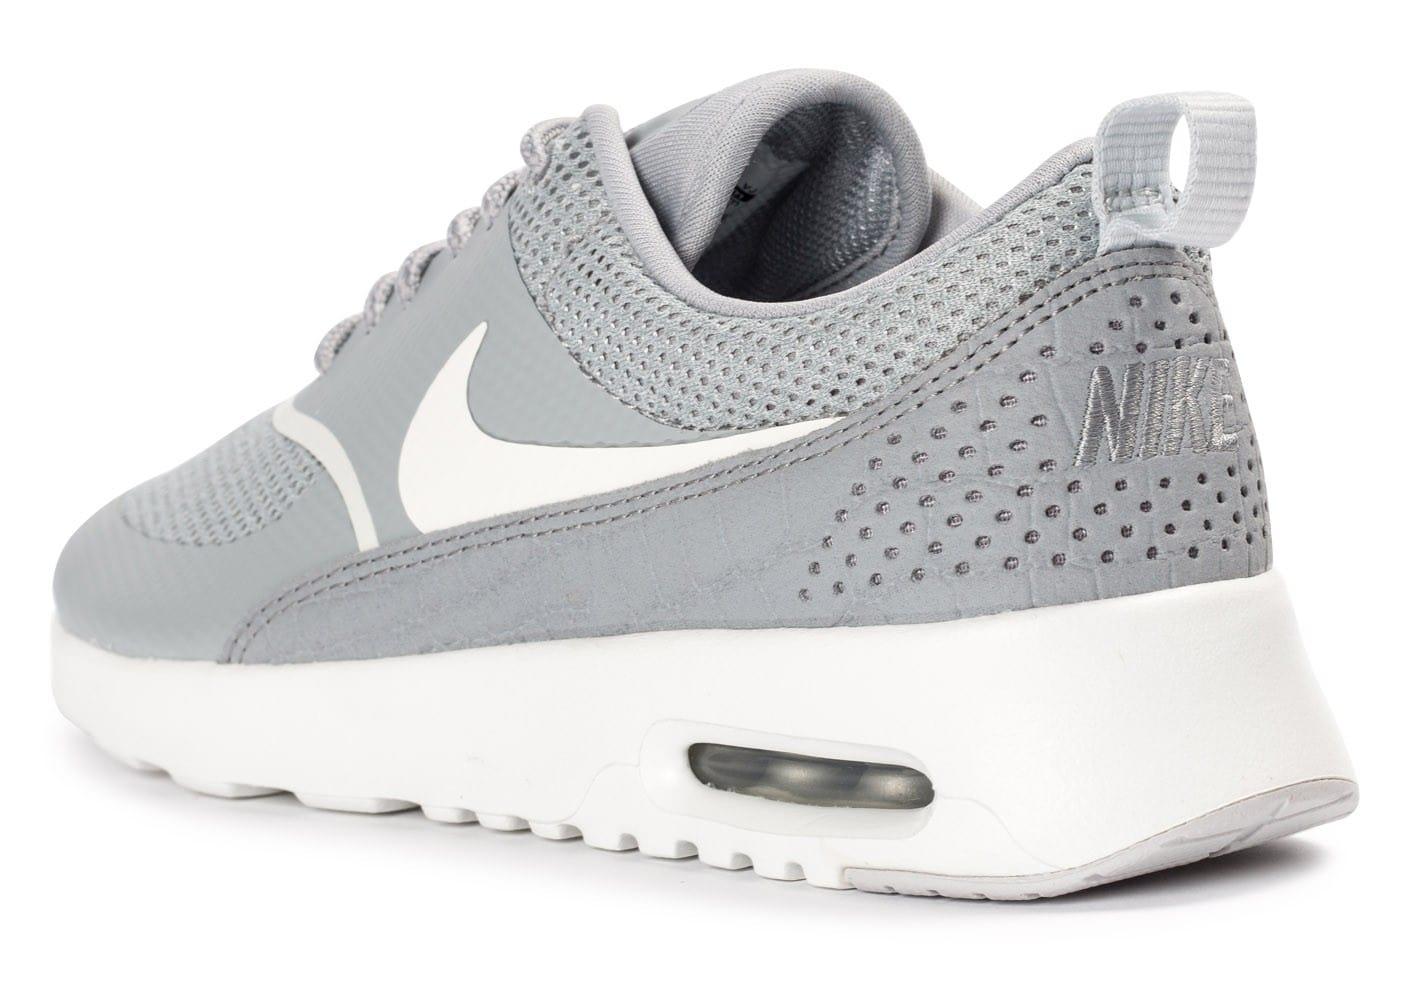 Nike Air Max Thea W grise Chaussures Baskets femme Chausport